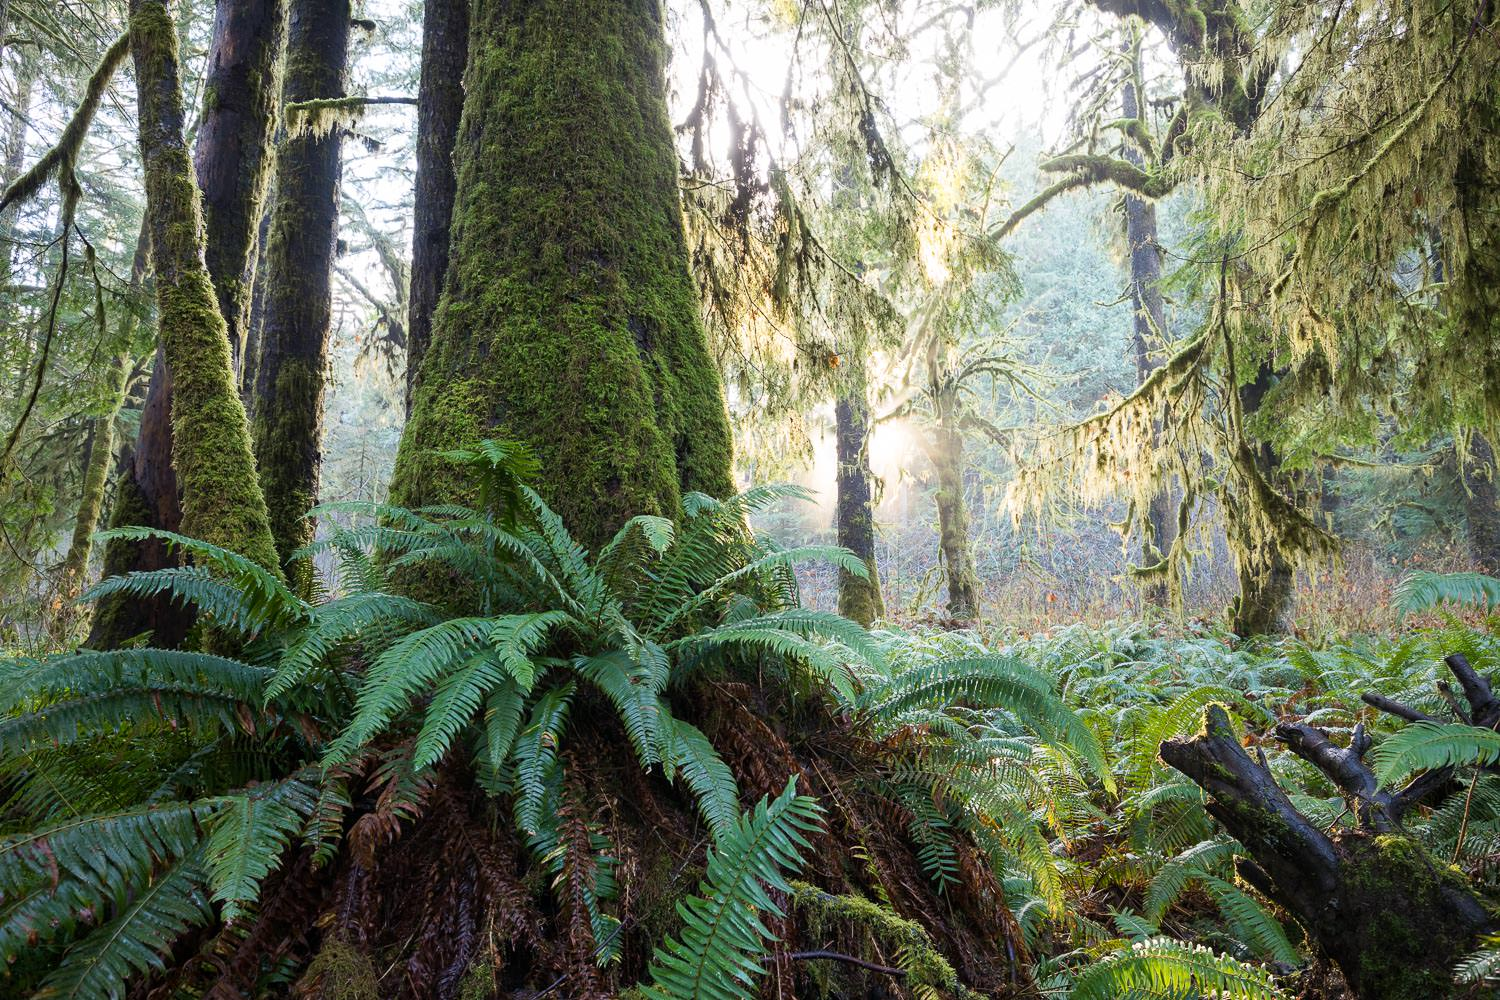 fern-gully-grove-spruce-port-renfrew.jpg